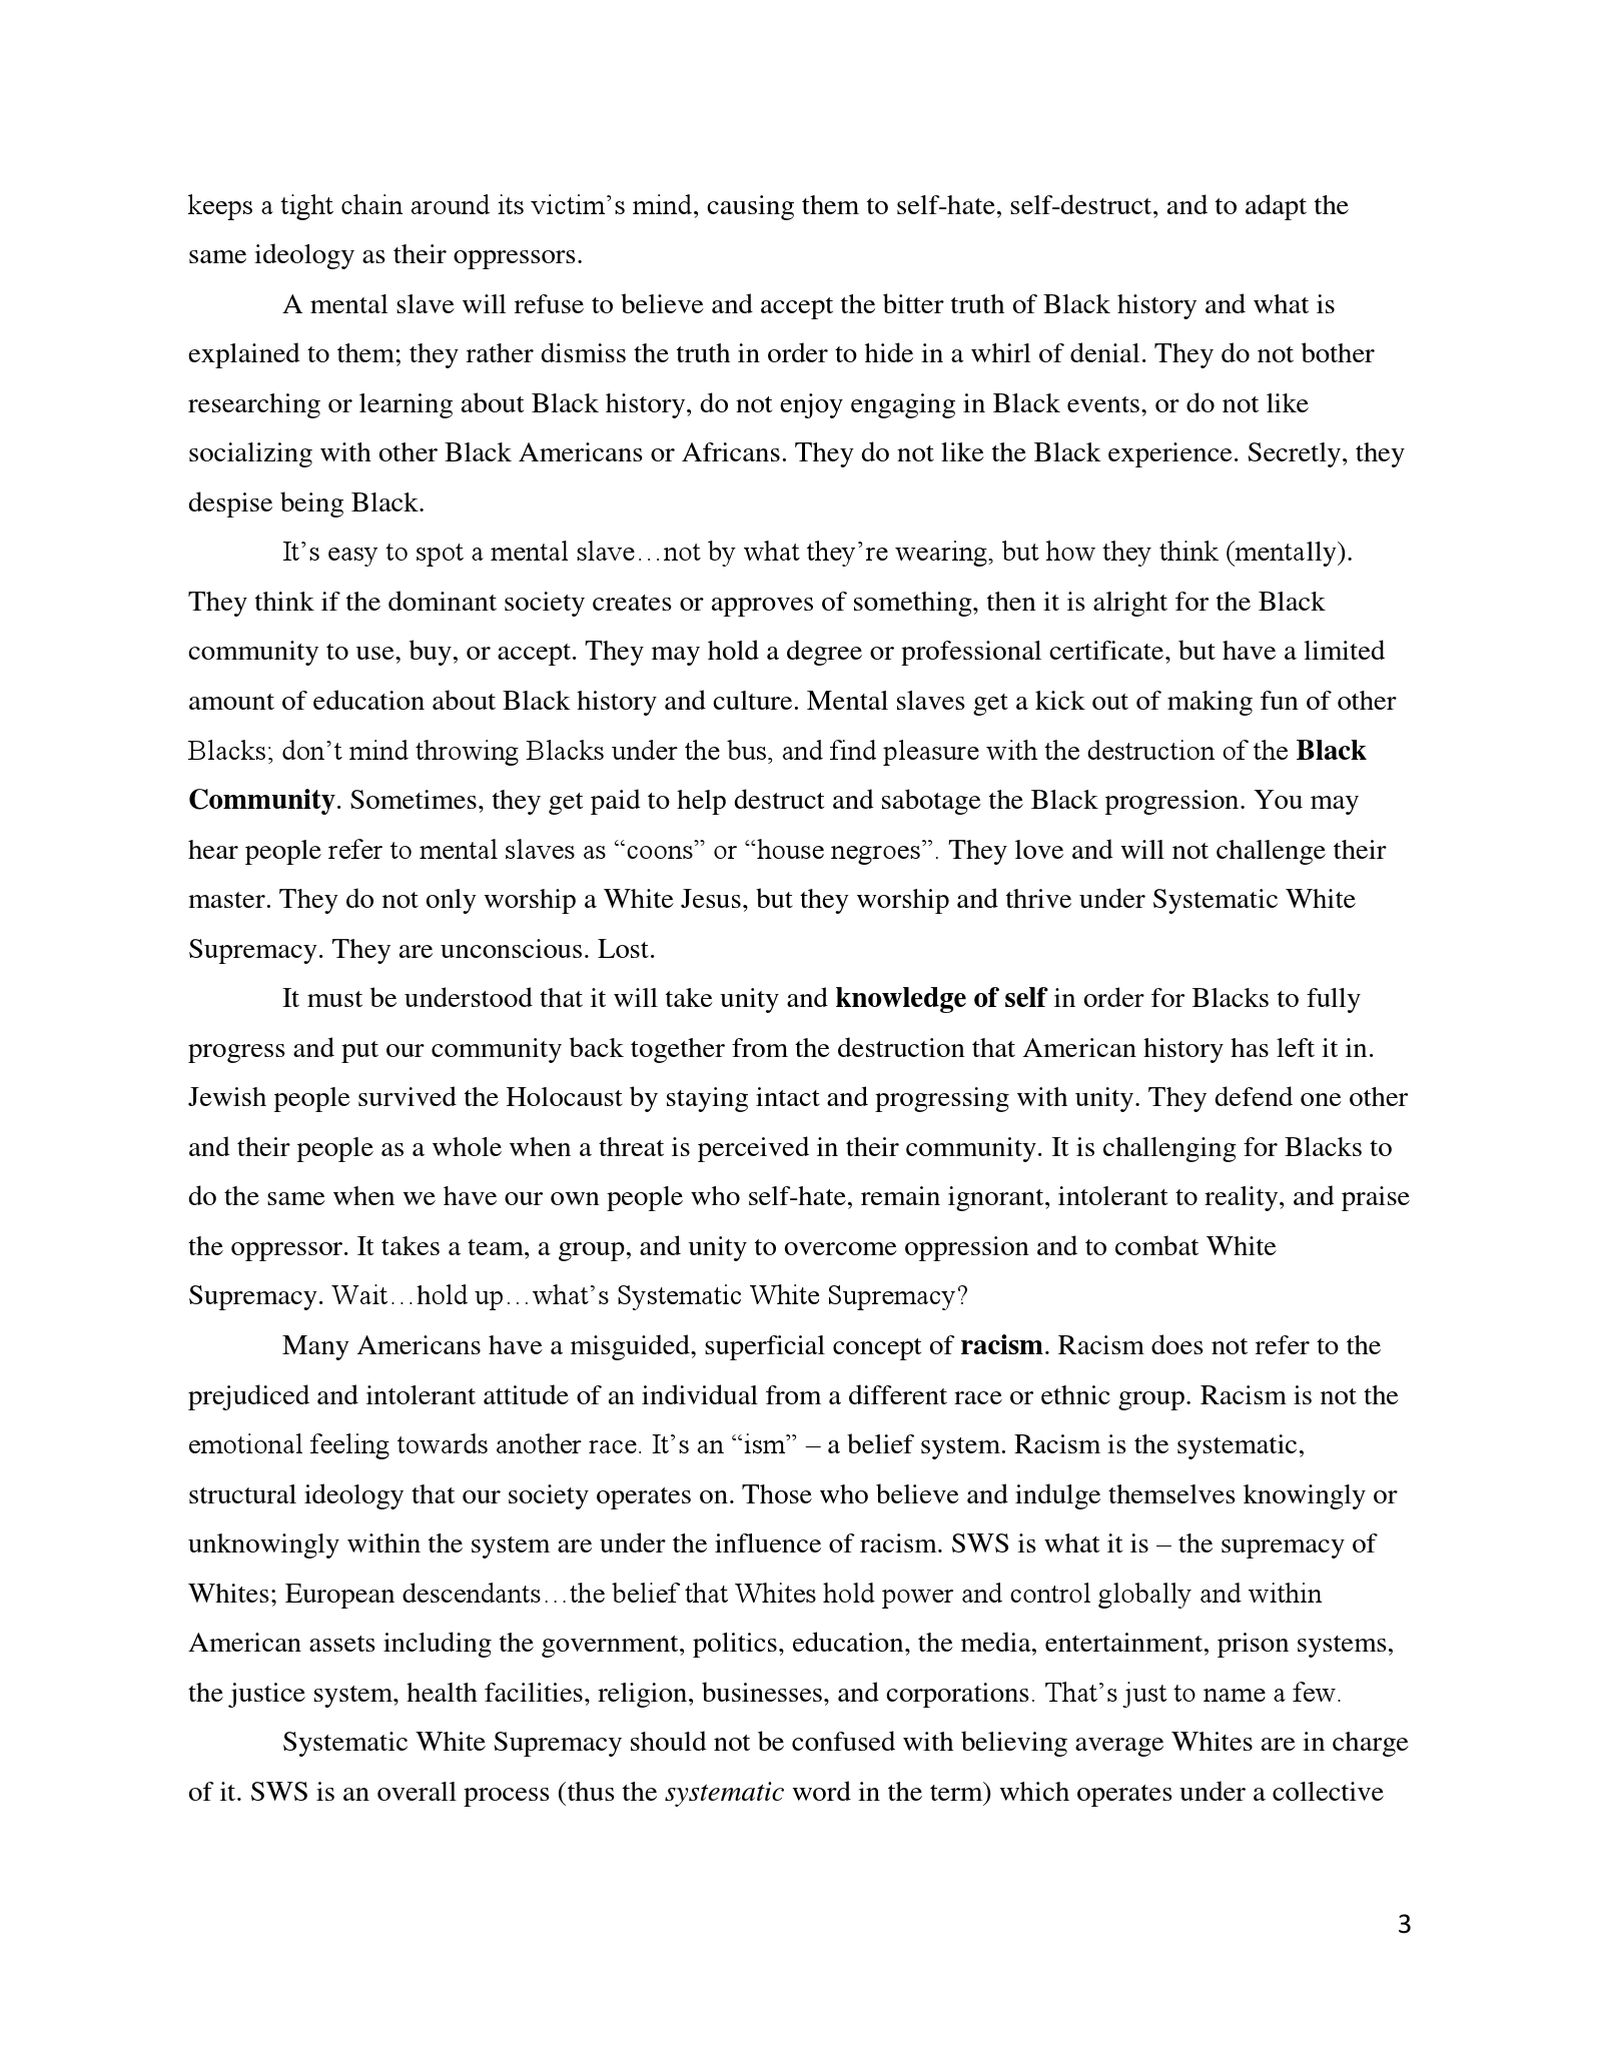 003 Large Essay Example On Exceptional Racism In Hindi Conclusion Othello Full